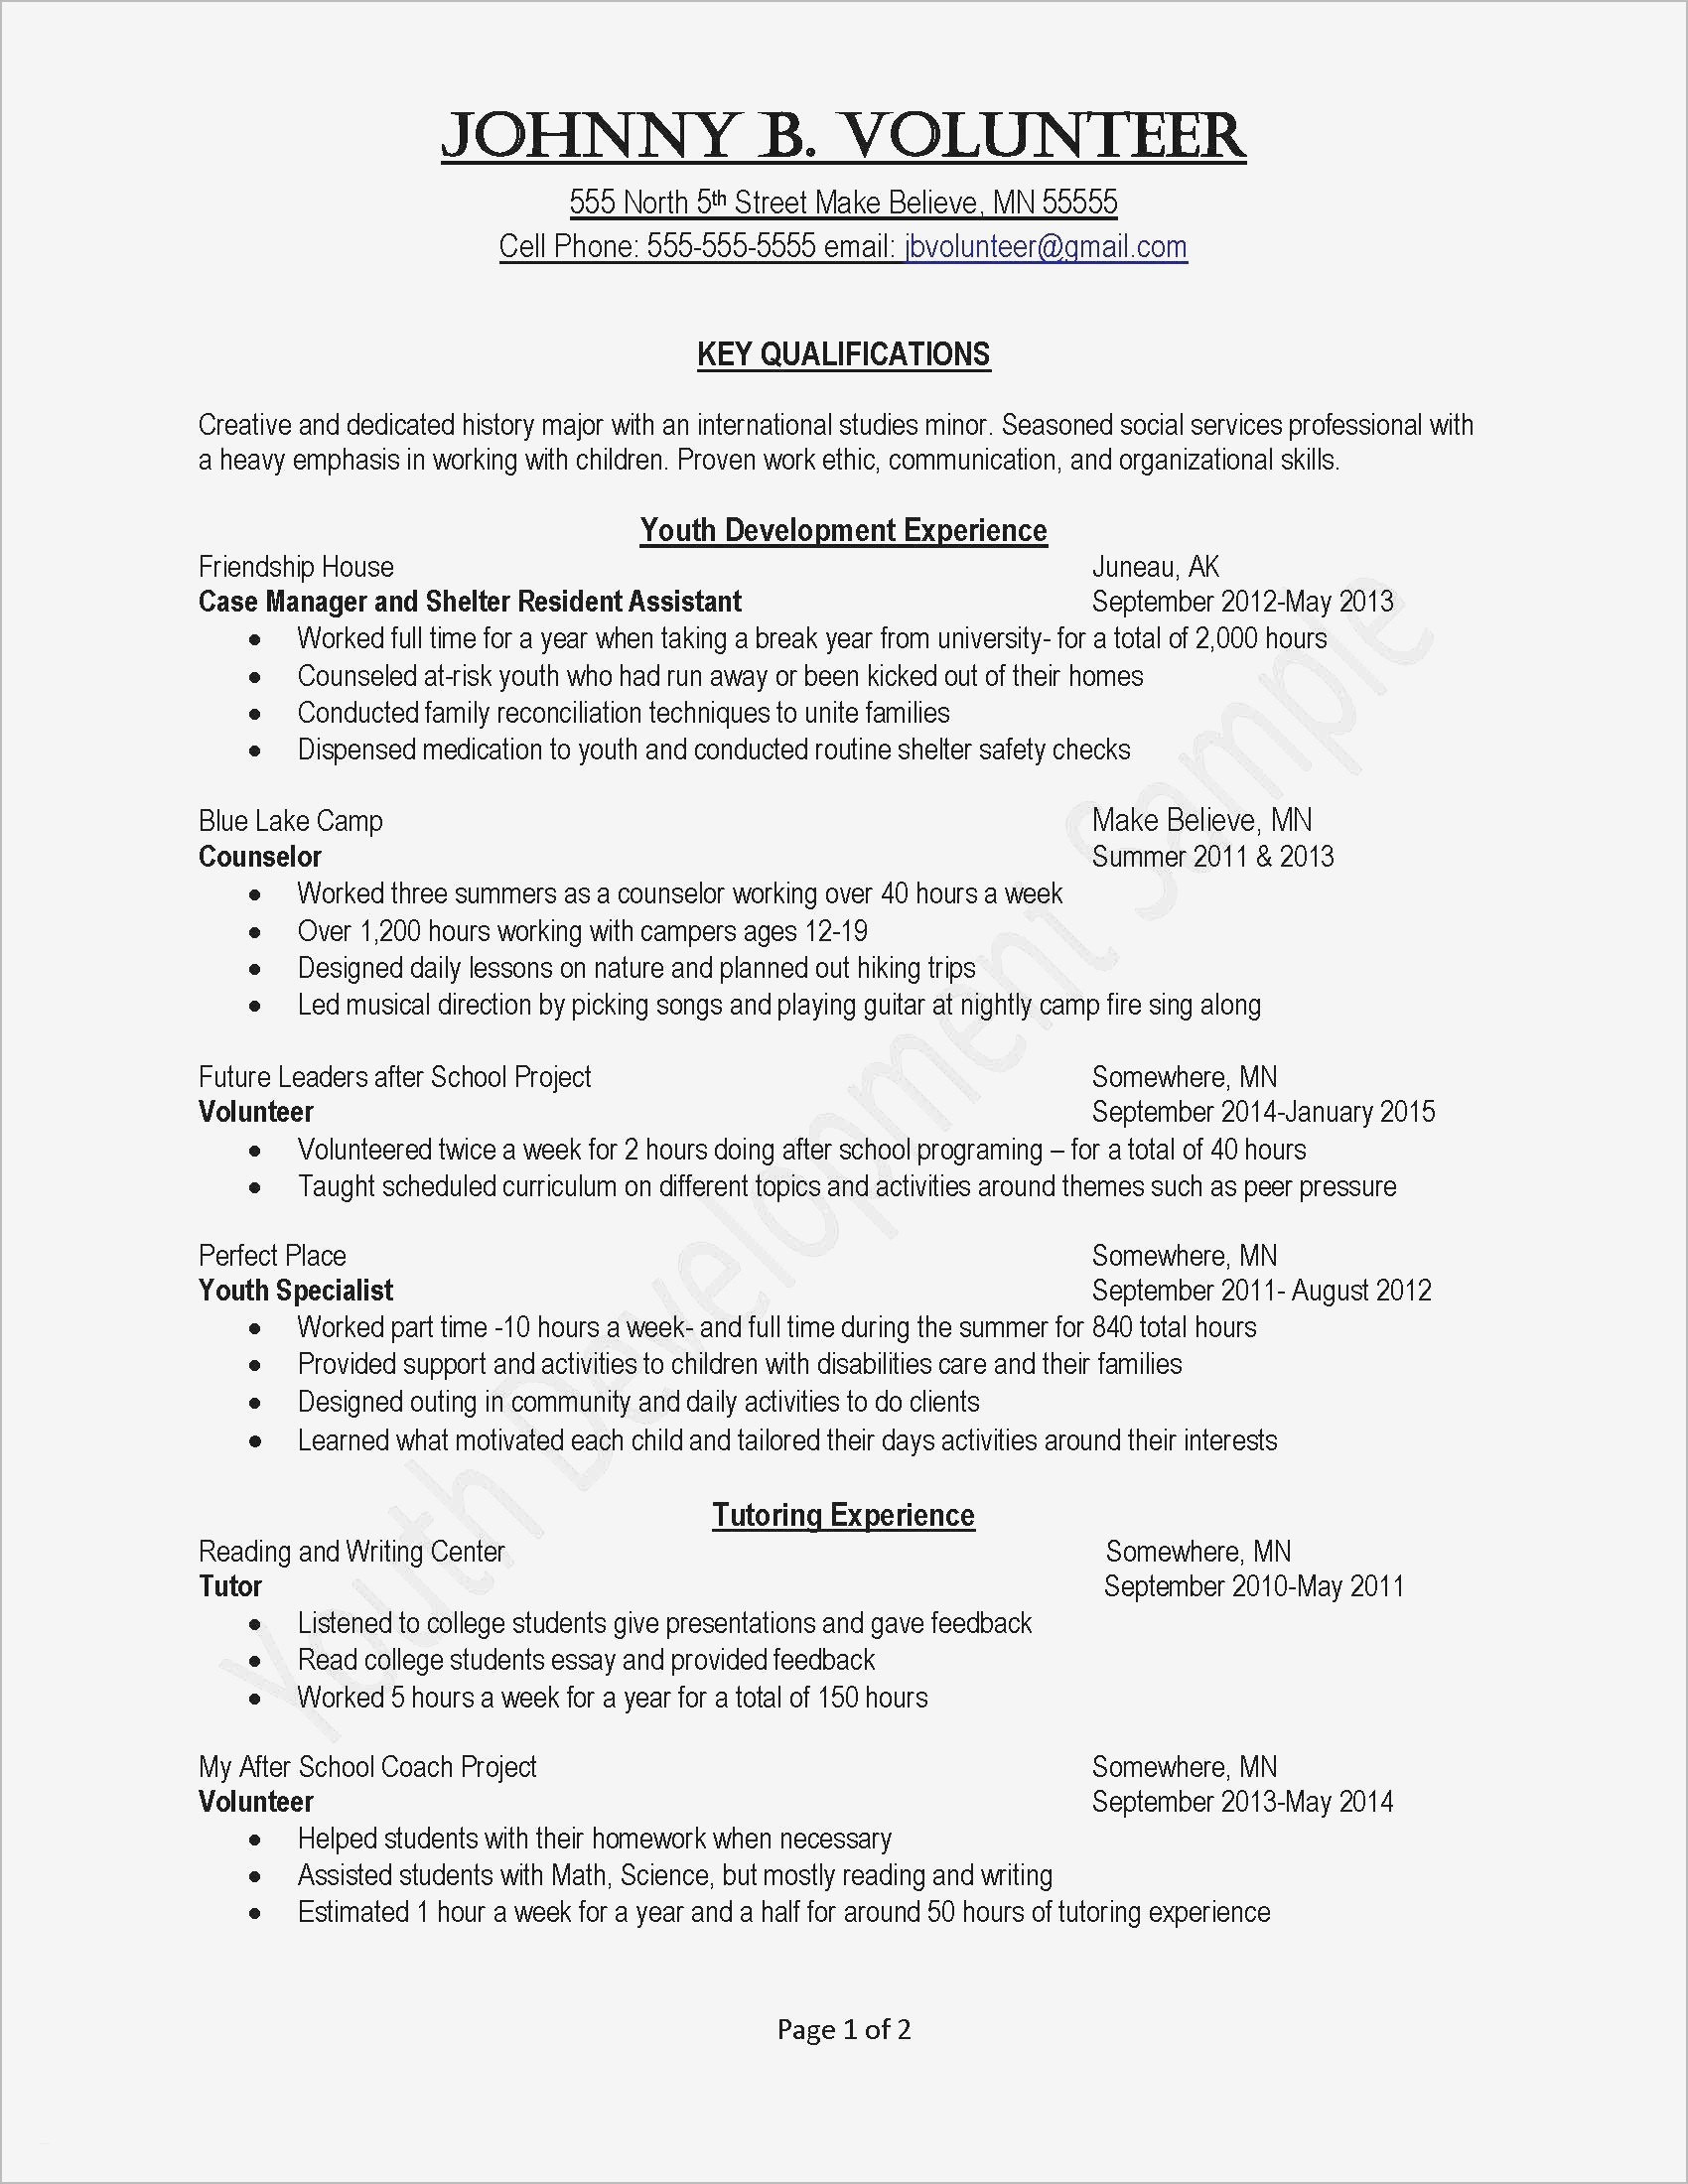 Human Services Resume Template - Template for Cover Letter and Resume Fresh Activities Resume